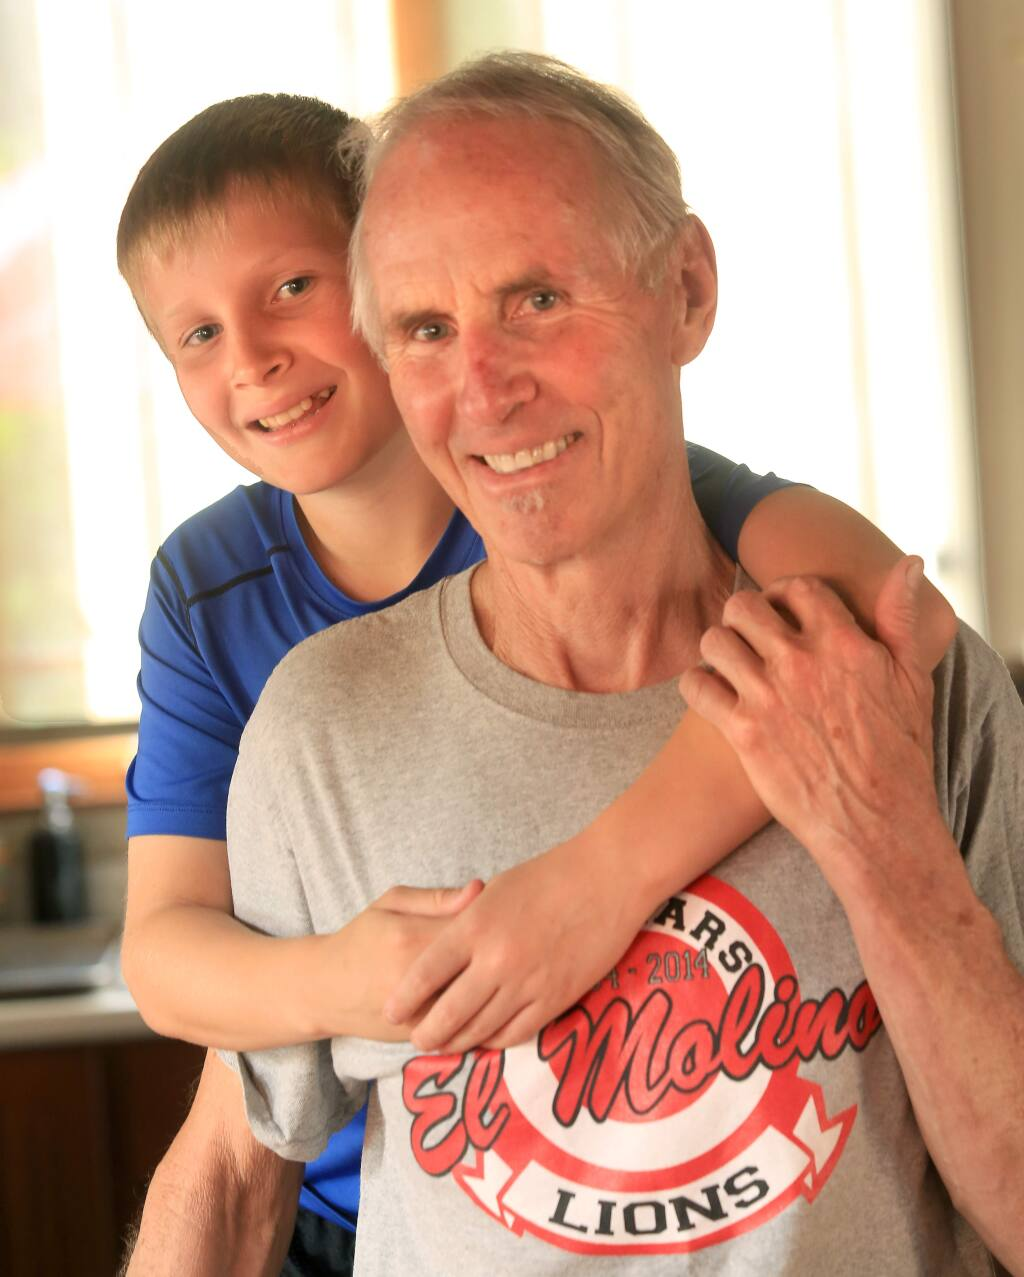 Lewis Griffith, 13, saved his dad Steve Griffith from a heart attack, by using chest compressions, a technique he learned from a class at Forestville Academy, Wednesday Oct. 1, 2014 in Forestville. (Kent Porter / Press Democrat) 2014